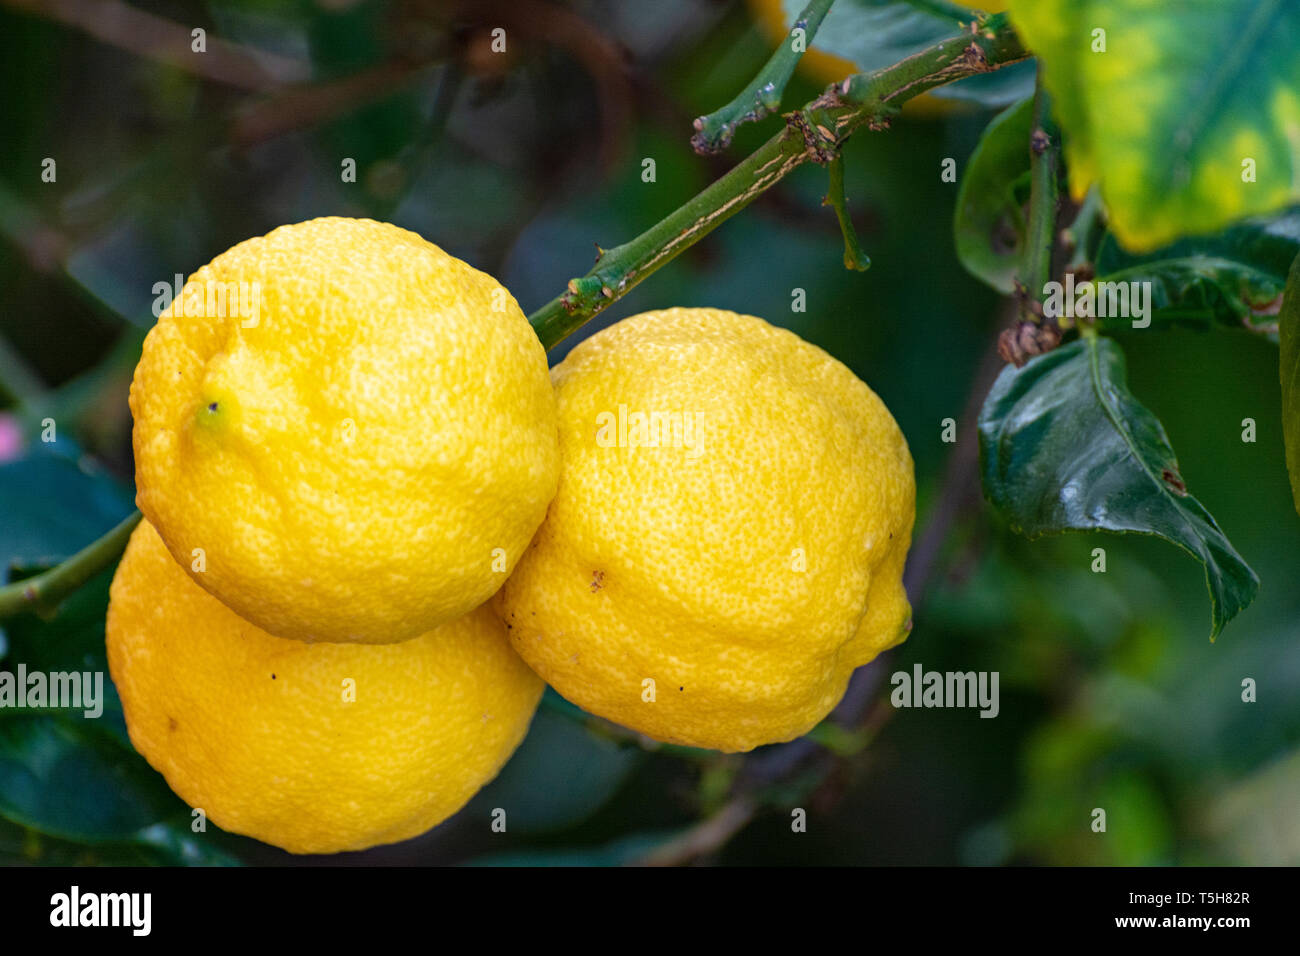 Ripe big yellow lemons, tropical citrus fruits hanging on tree ready to harvest close up Stock Photo